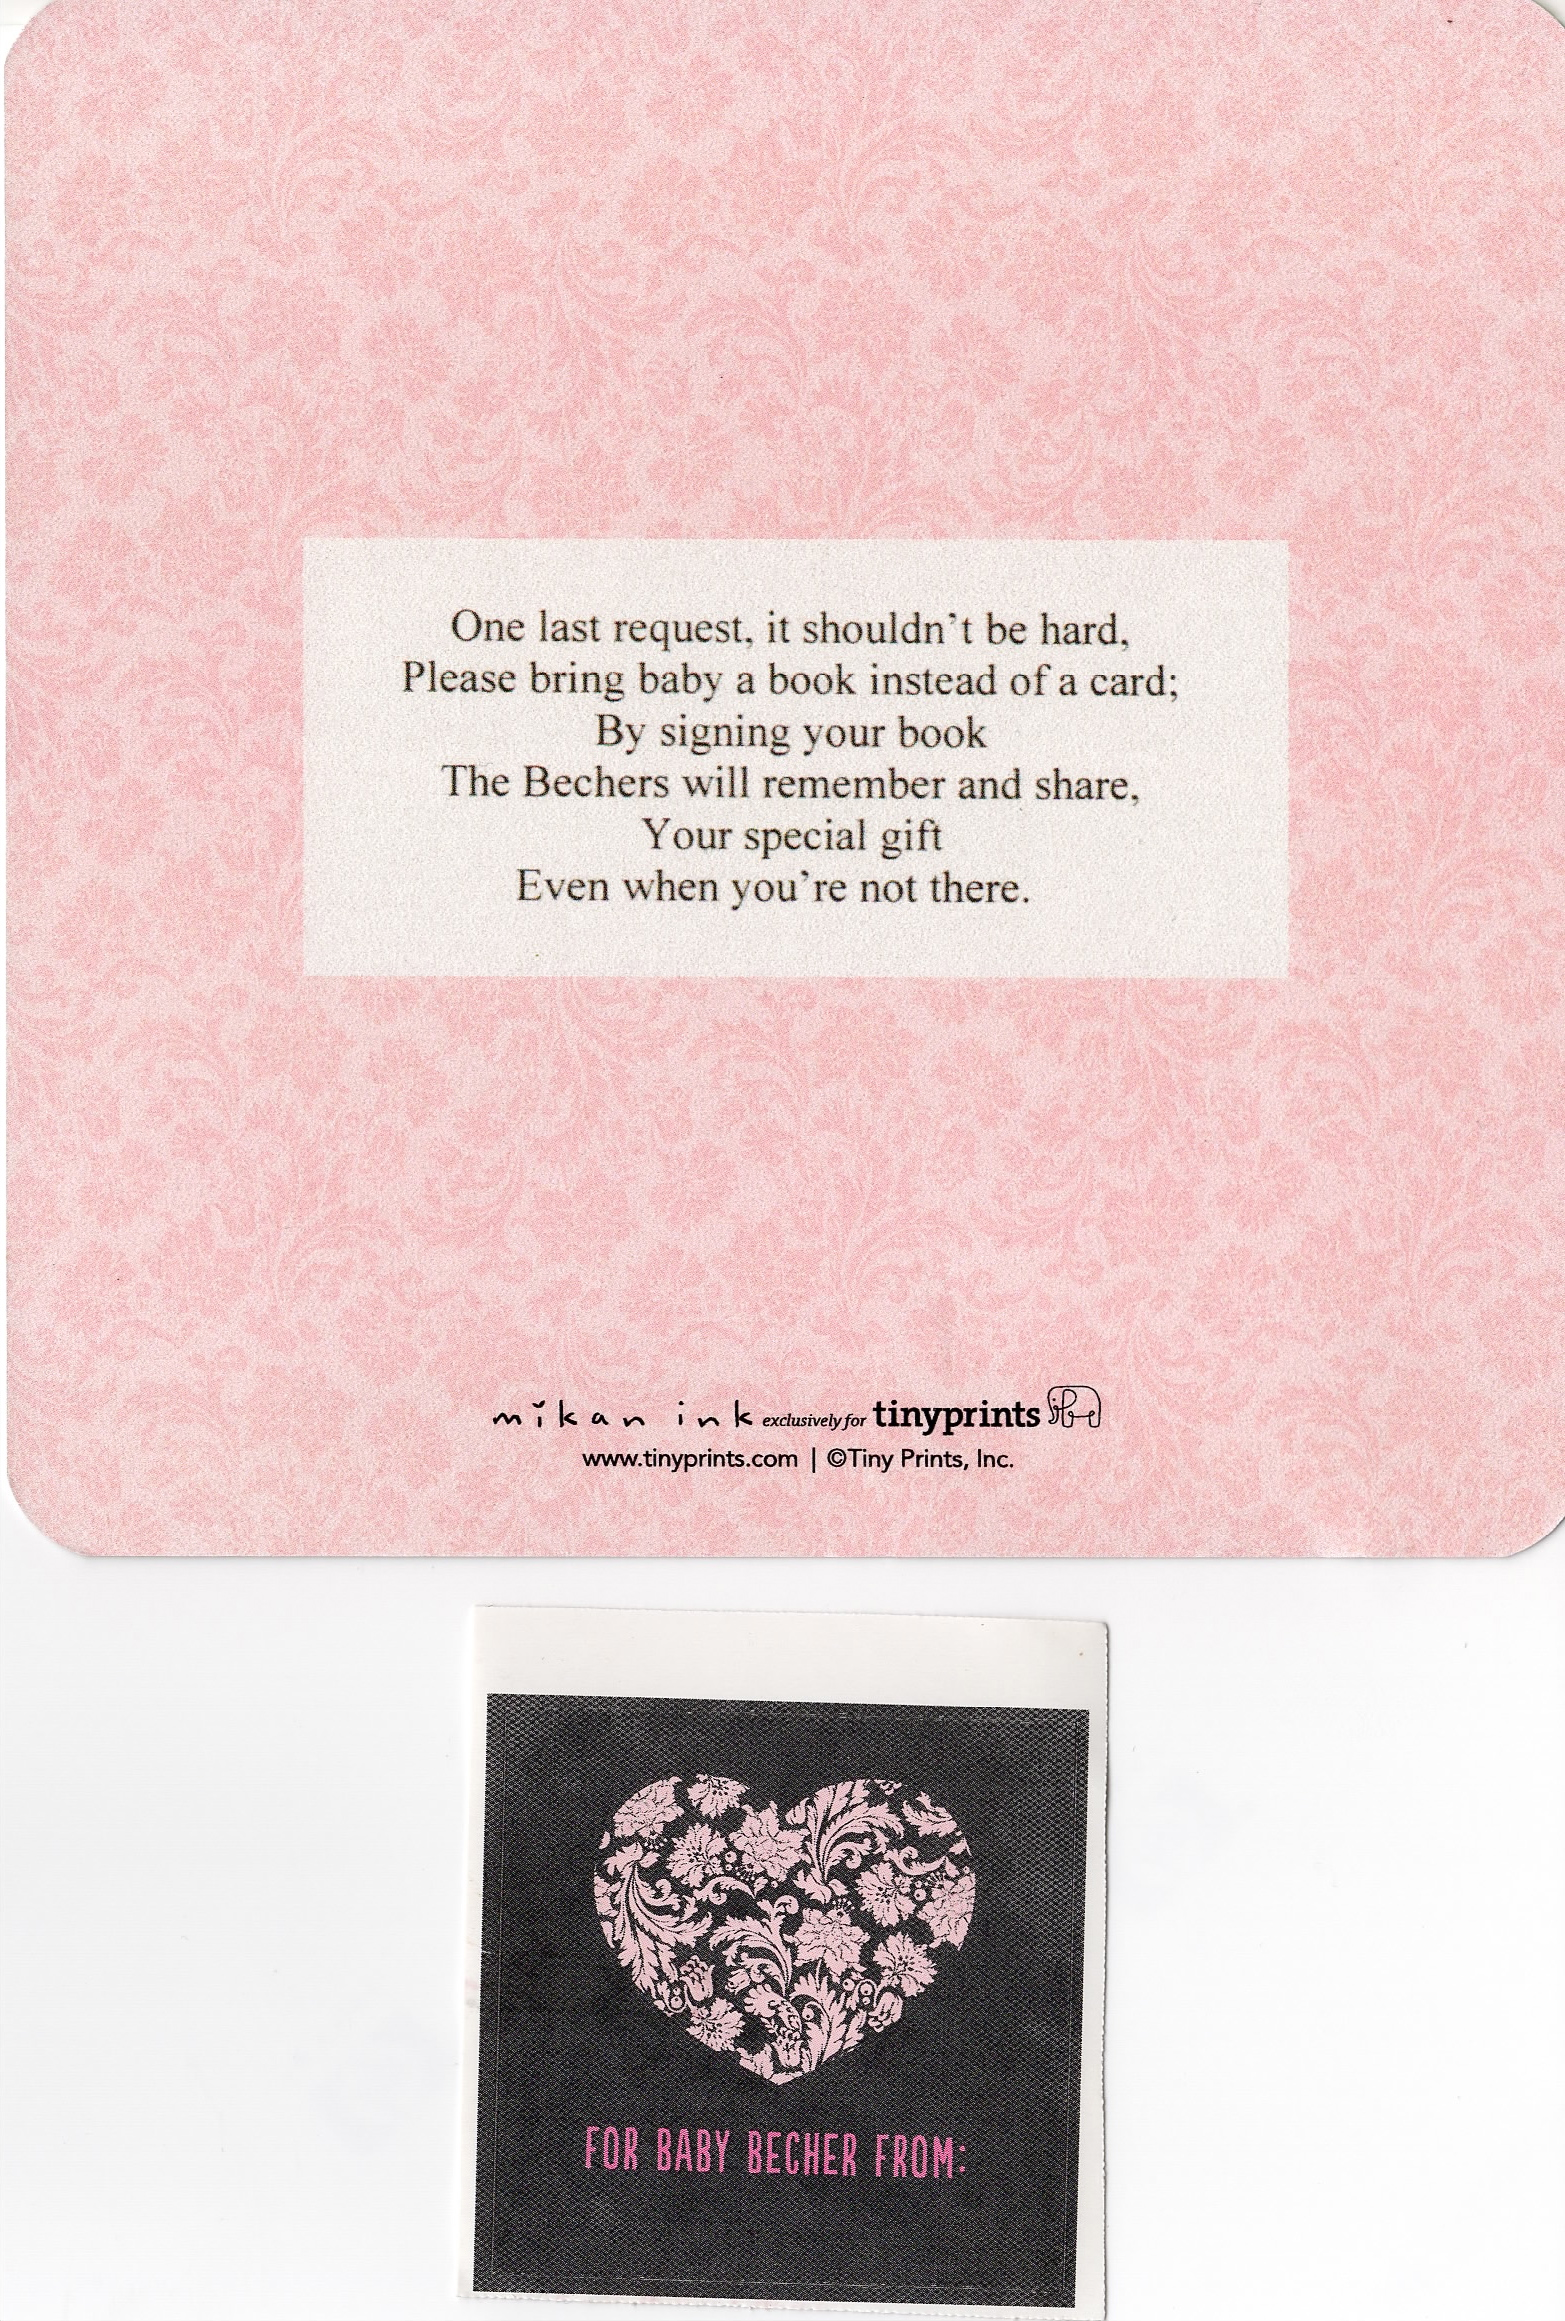 Thank You Gift For Mom Throwing Baby Shower - Gift Ideas